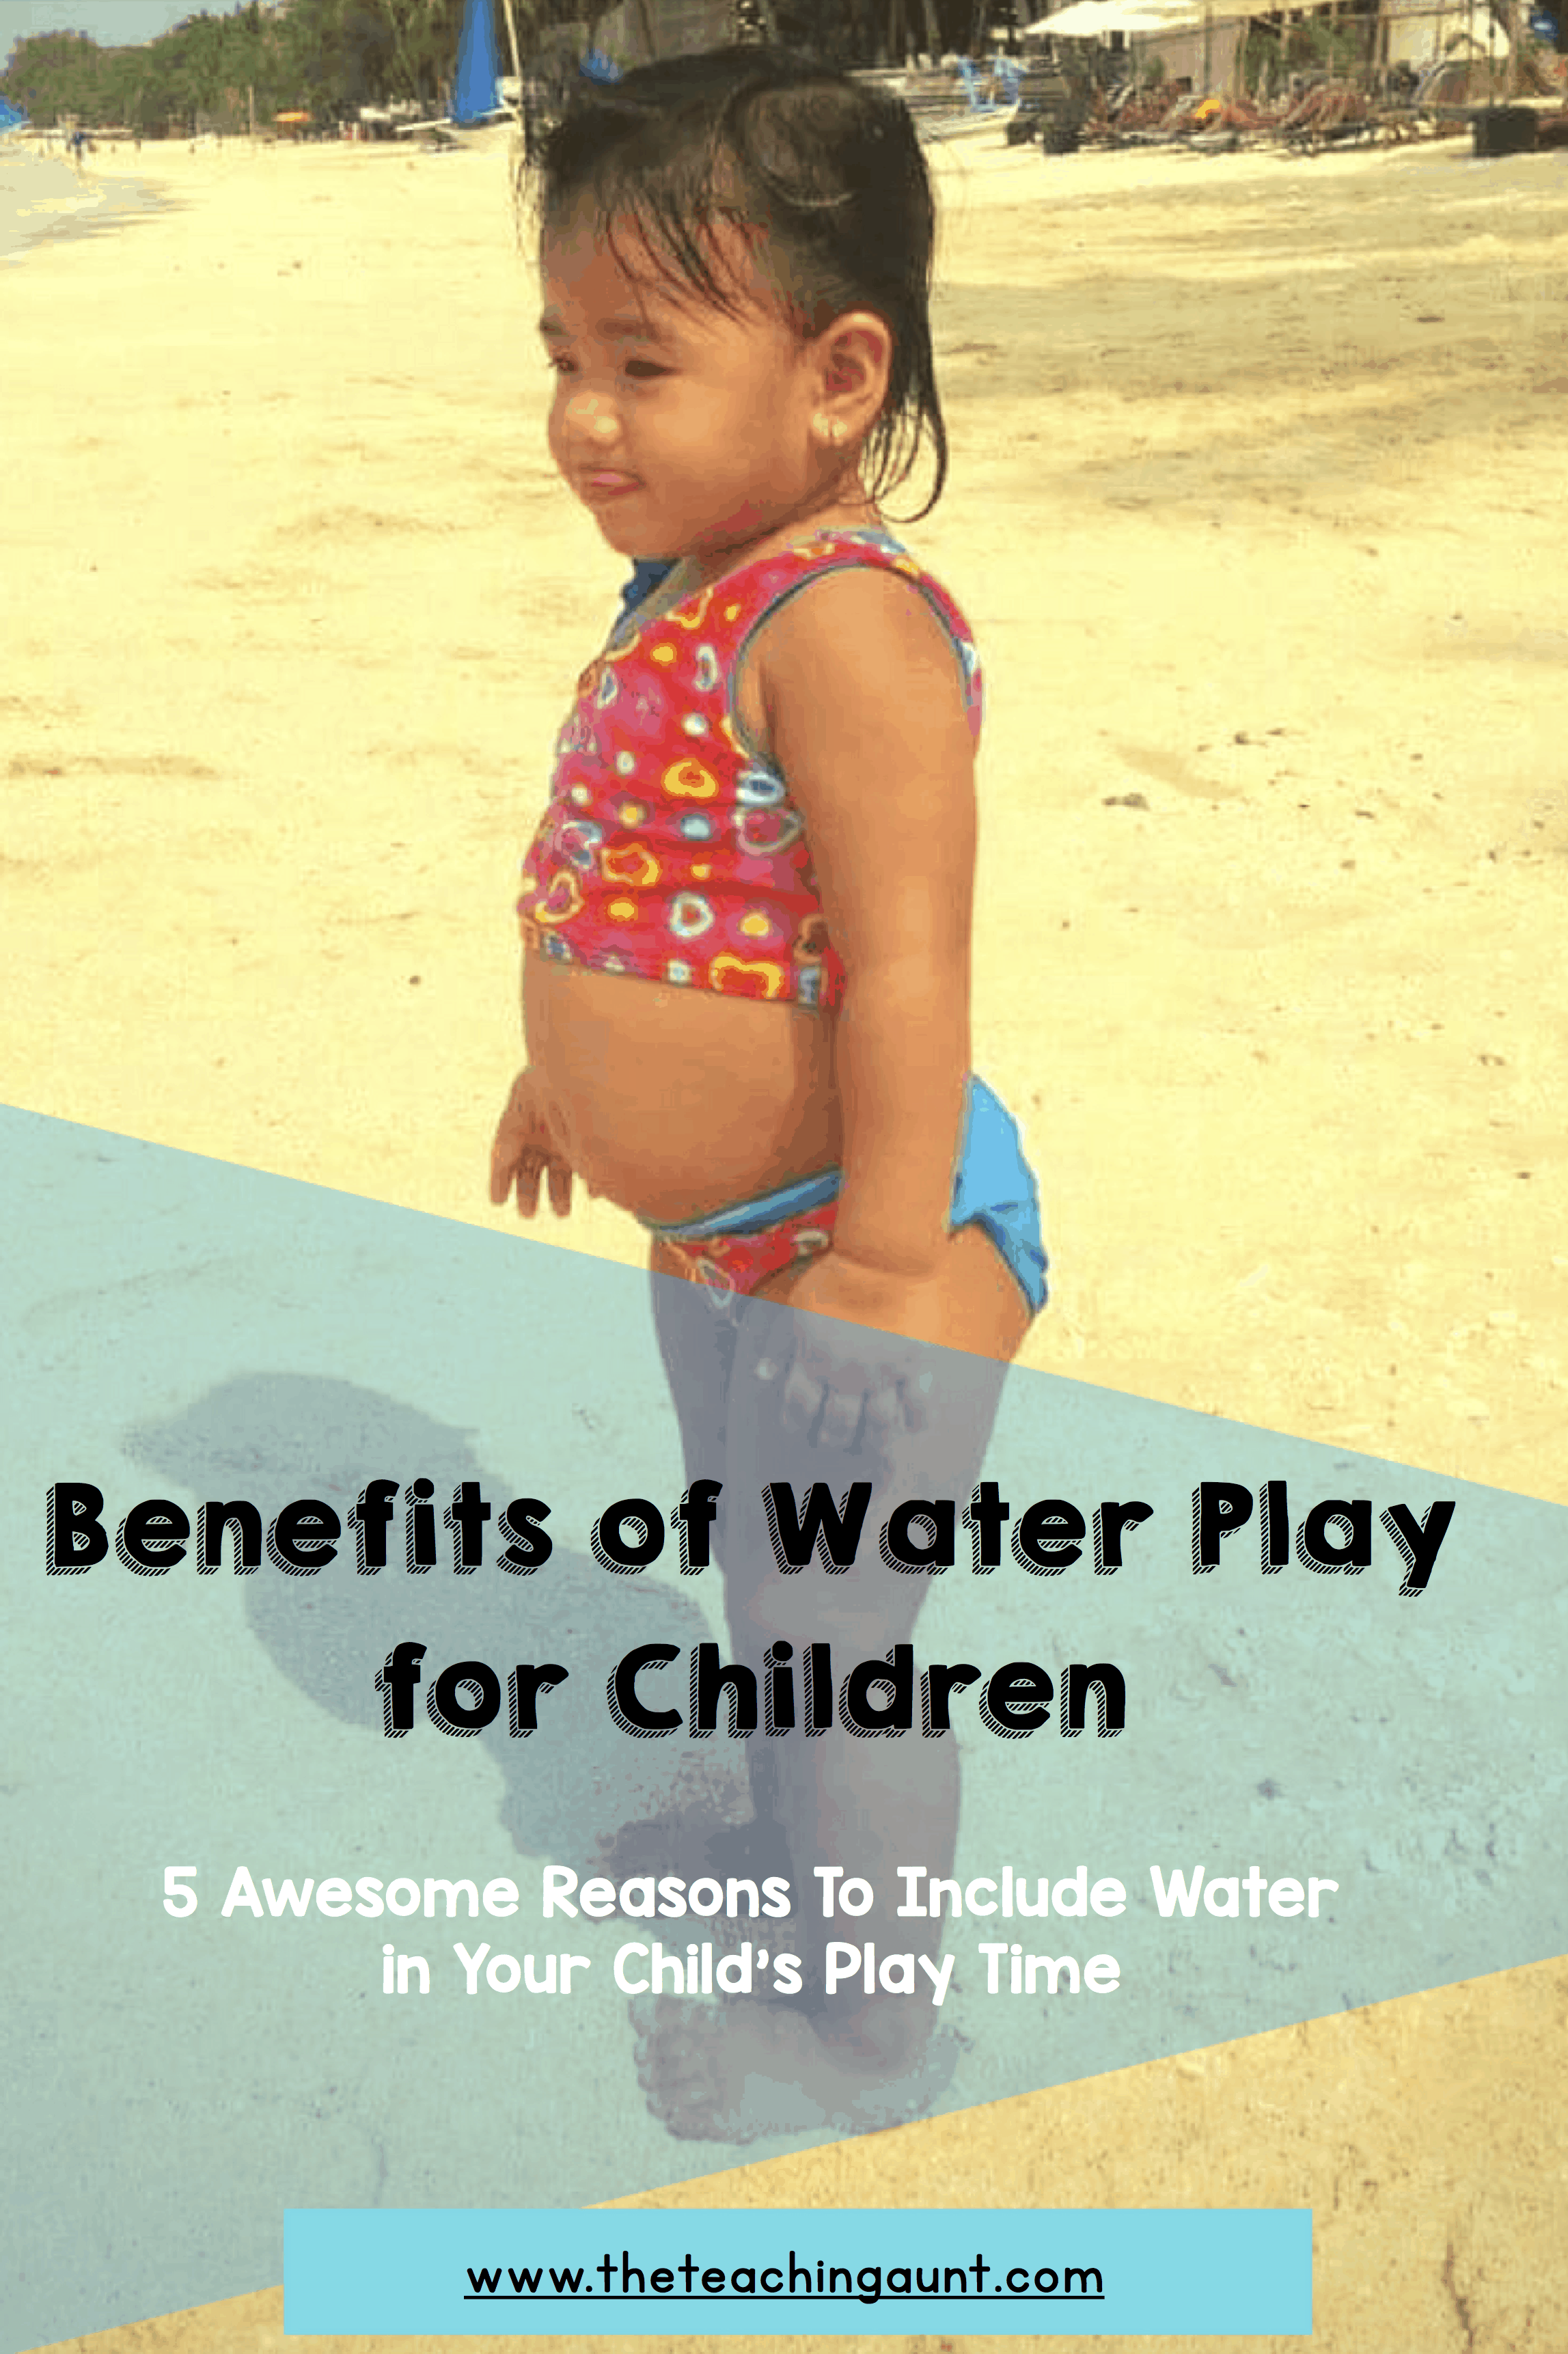 Benefits of Water Play for Children